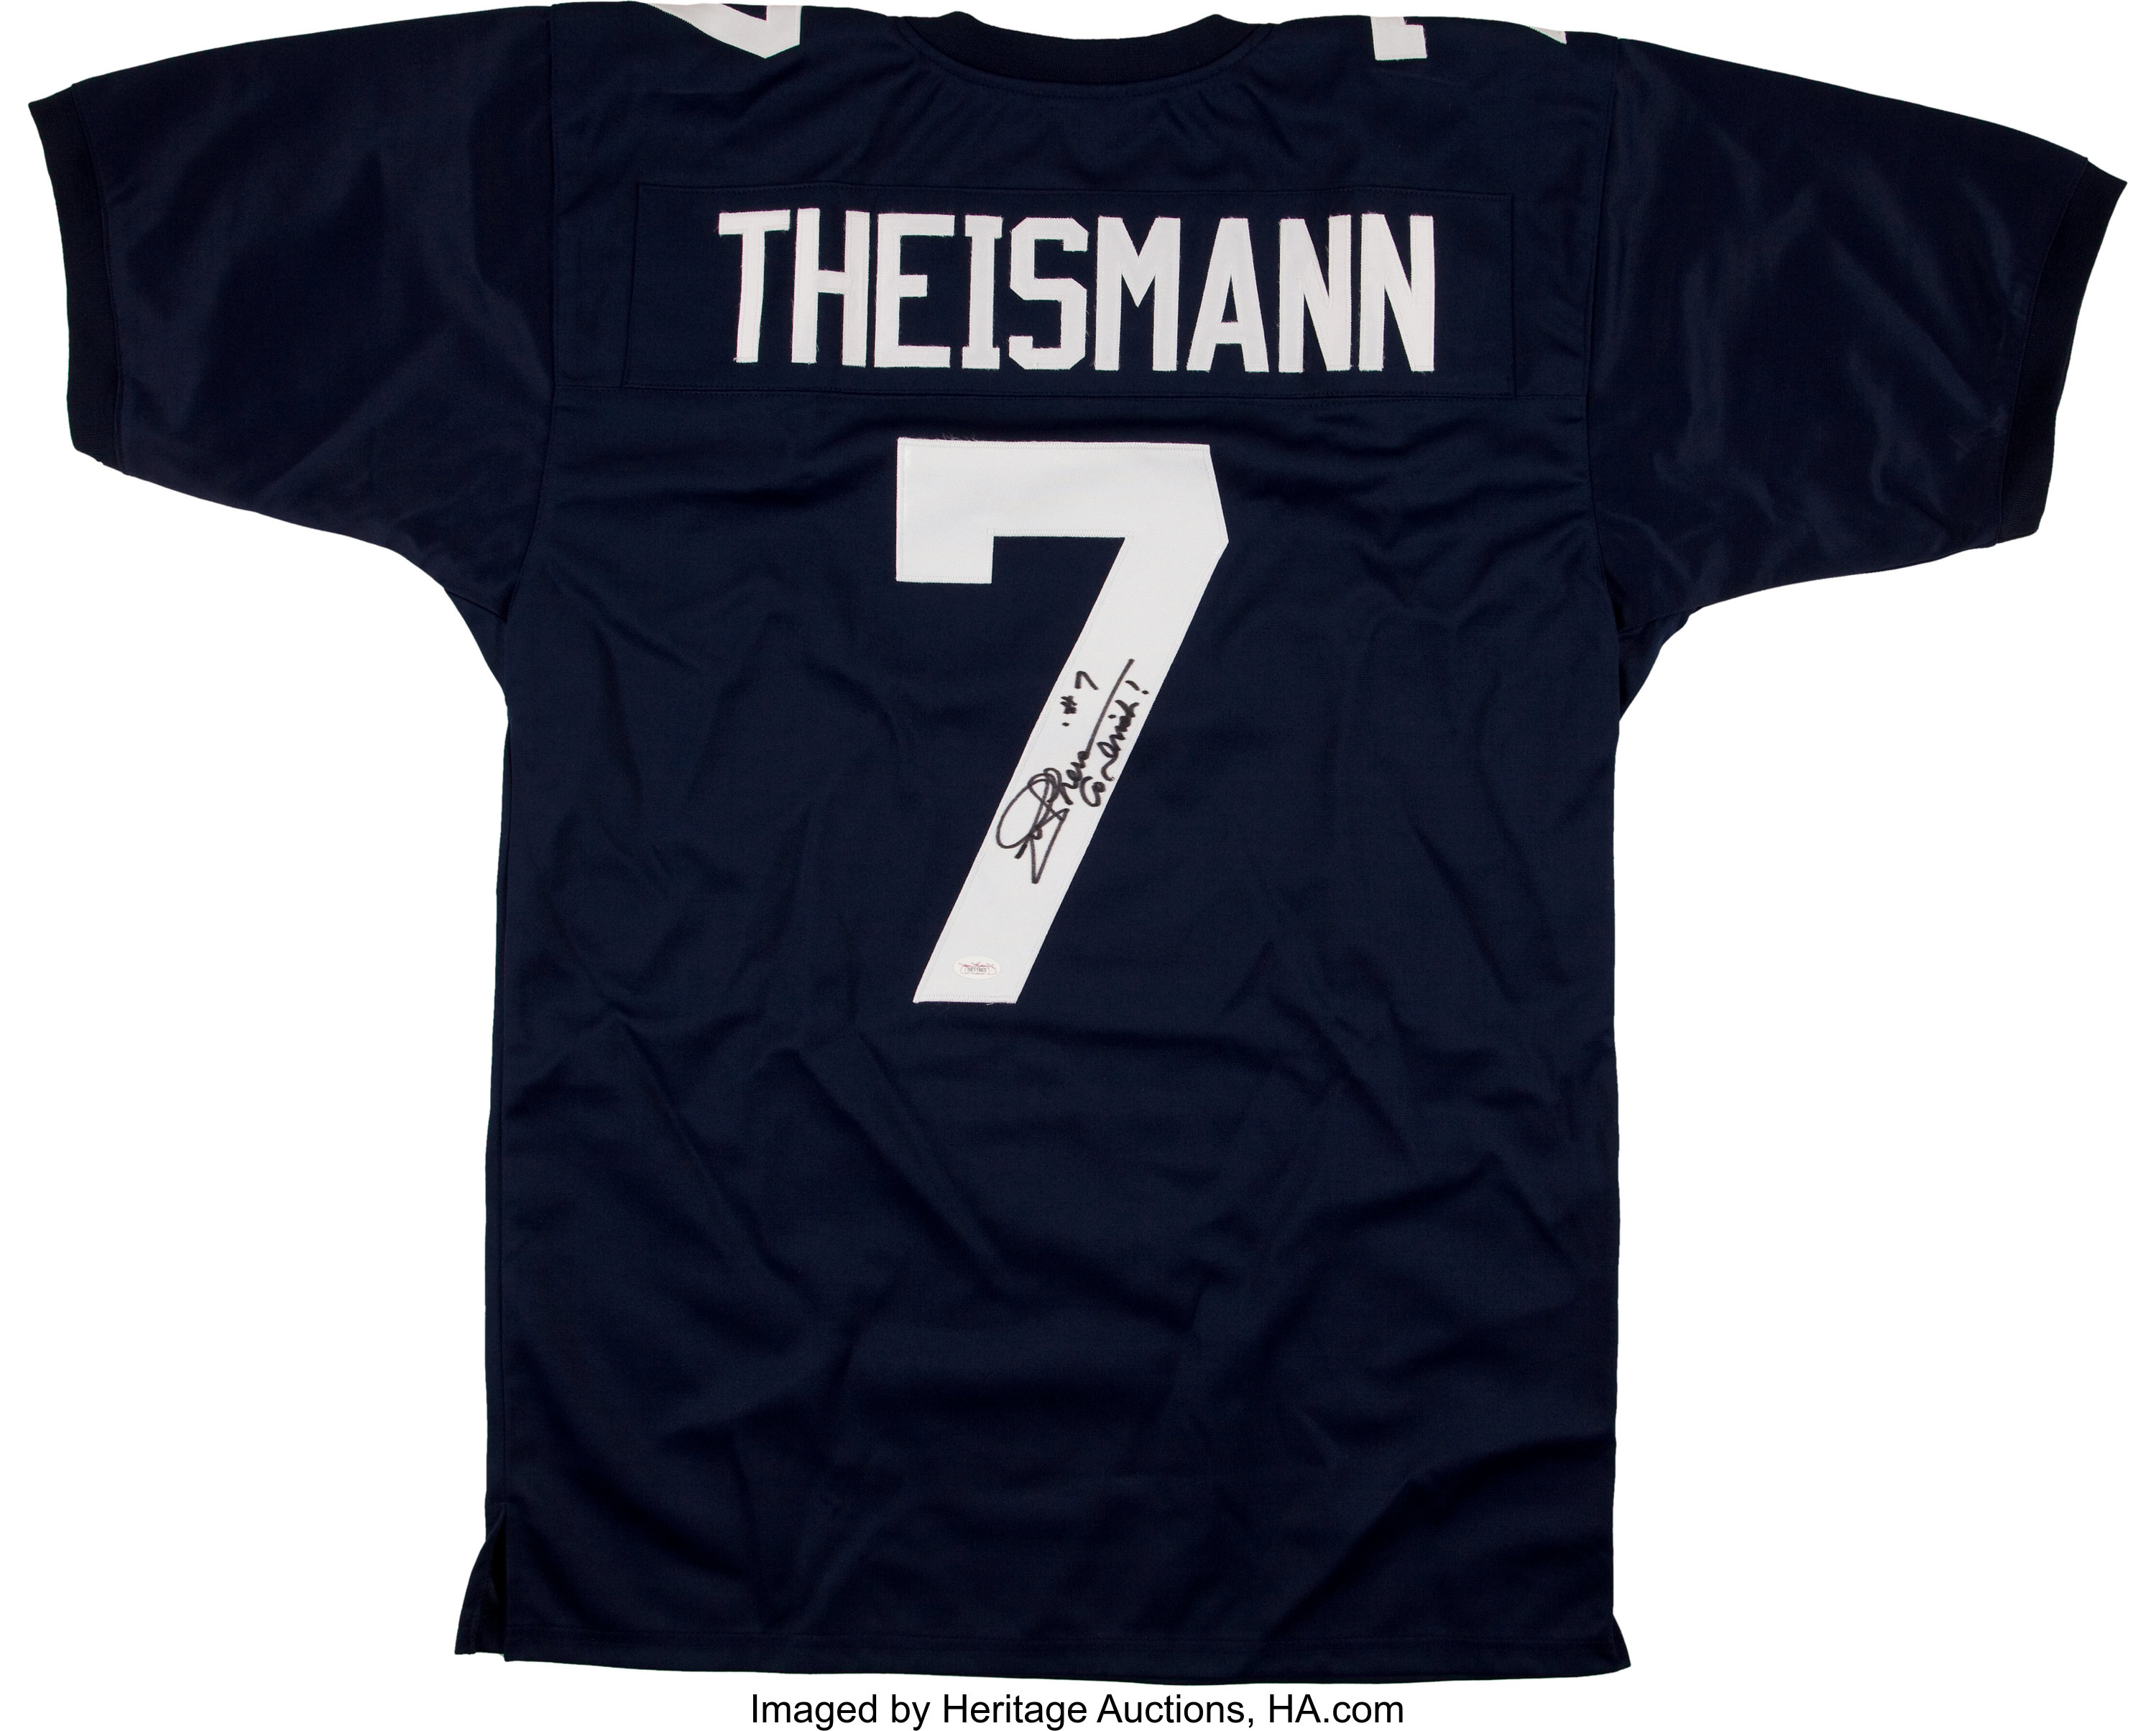 Joe Theismann Signed Notre Dame Jersey.... Football Collectibles ...